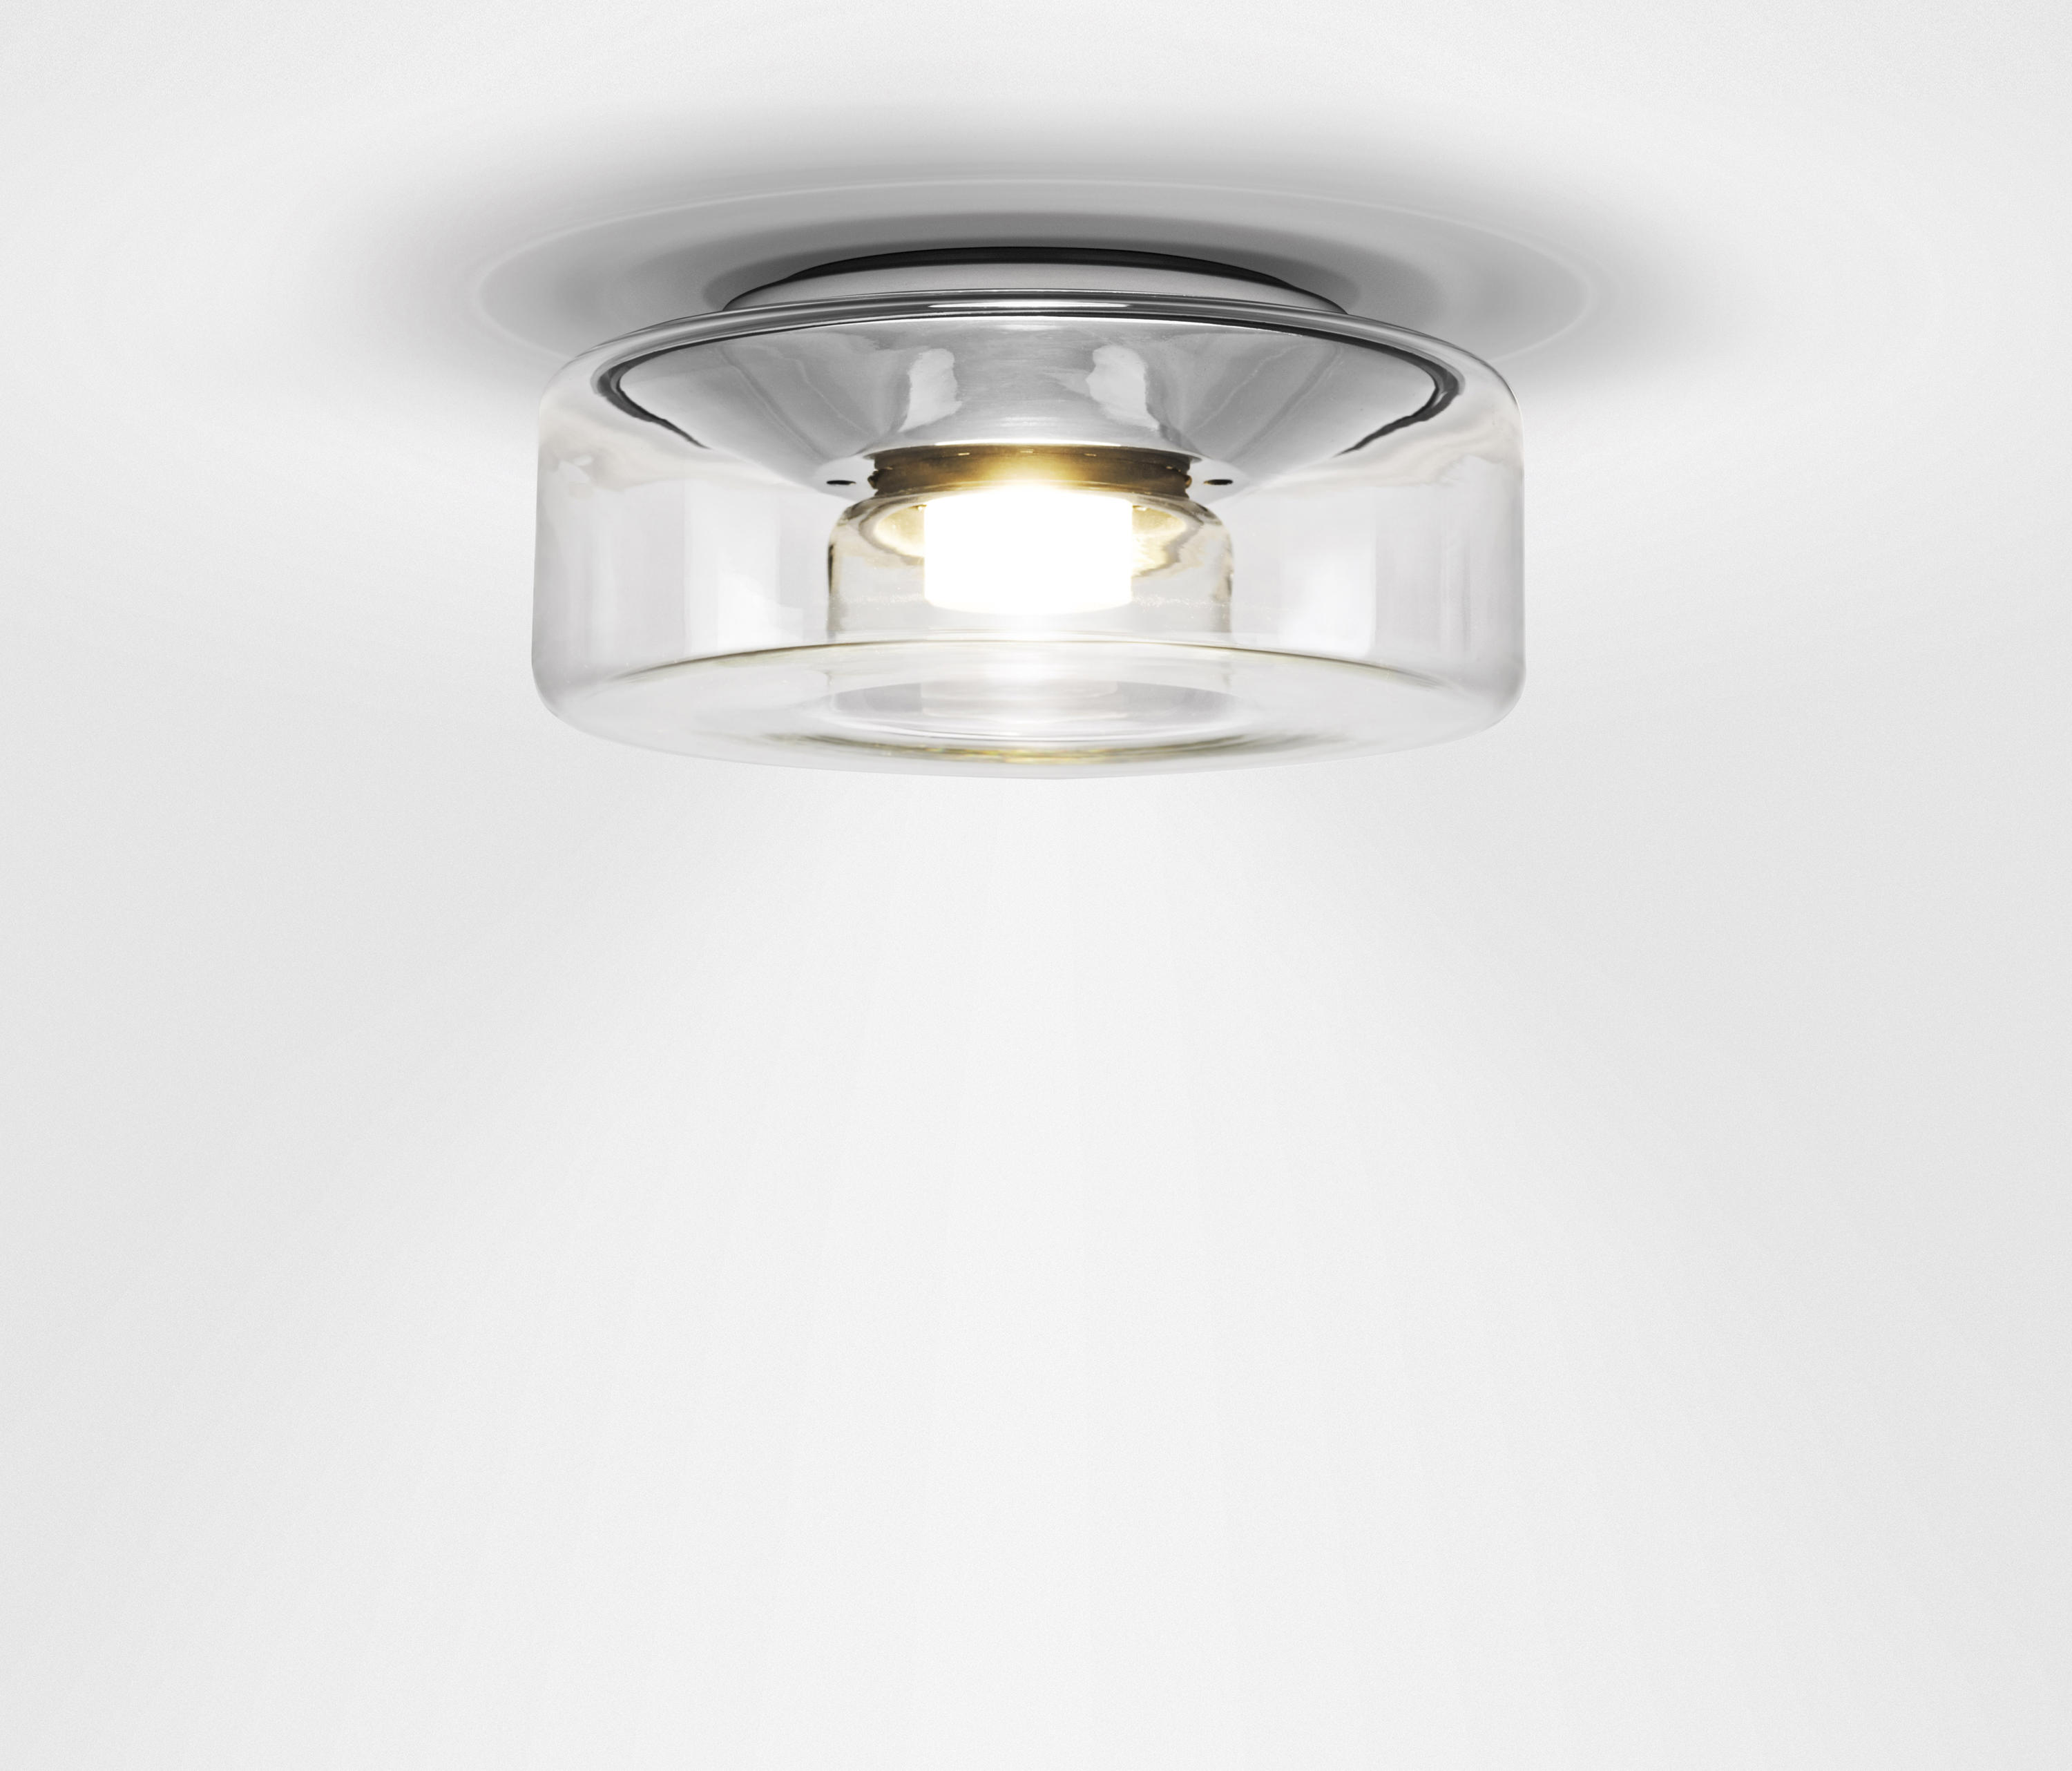 Curling Ceiling Clear Ceiling Lights From Serienghting Architonic